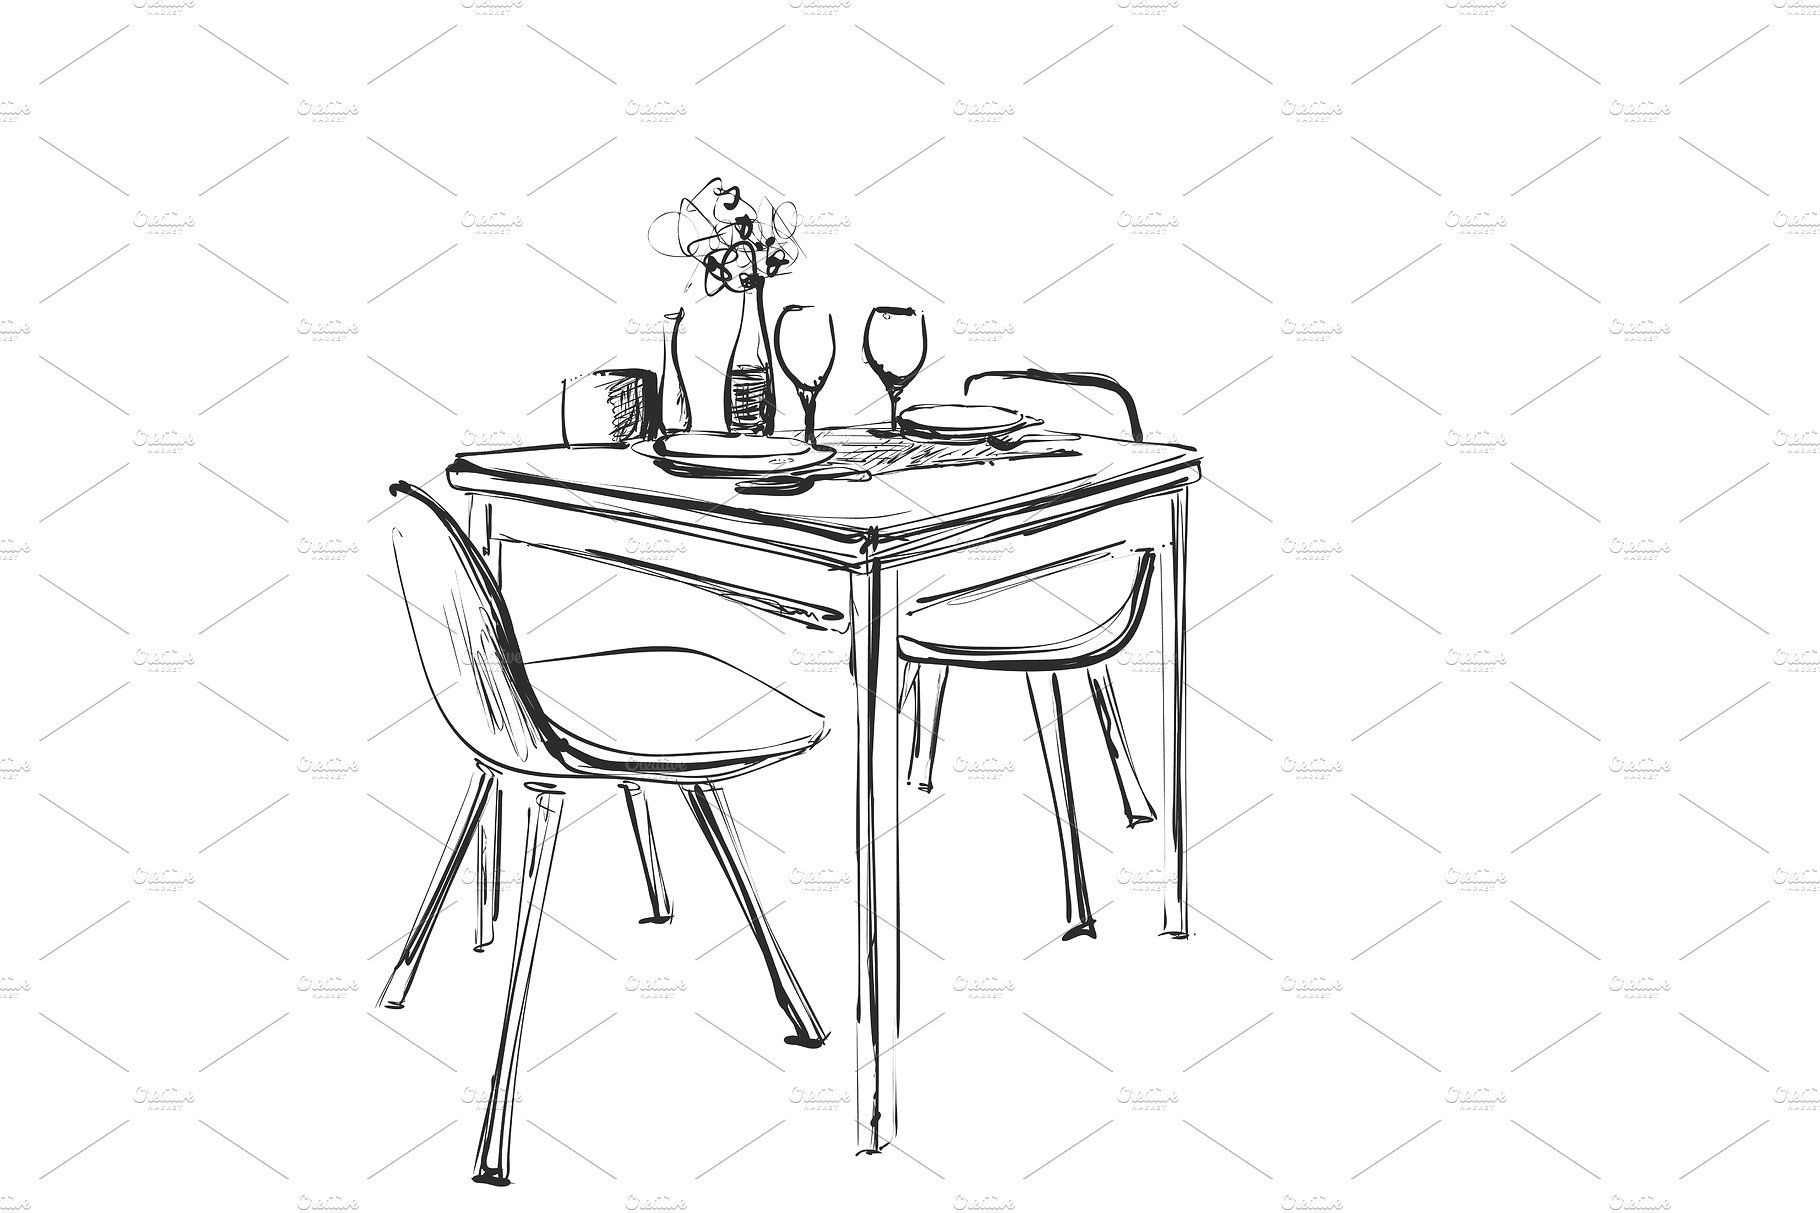 Table Setting Set Weekend Breakfast Or Dinner Hand Drawn Dishes Sketch Table And Chair How To Draw Hands Table Sketch Art Chair